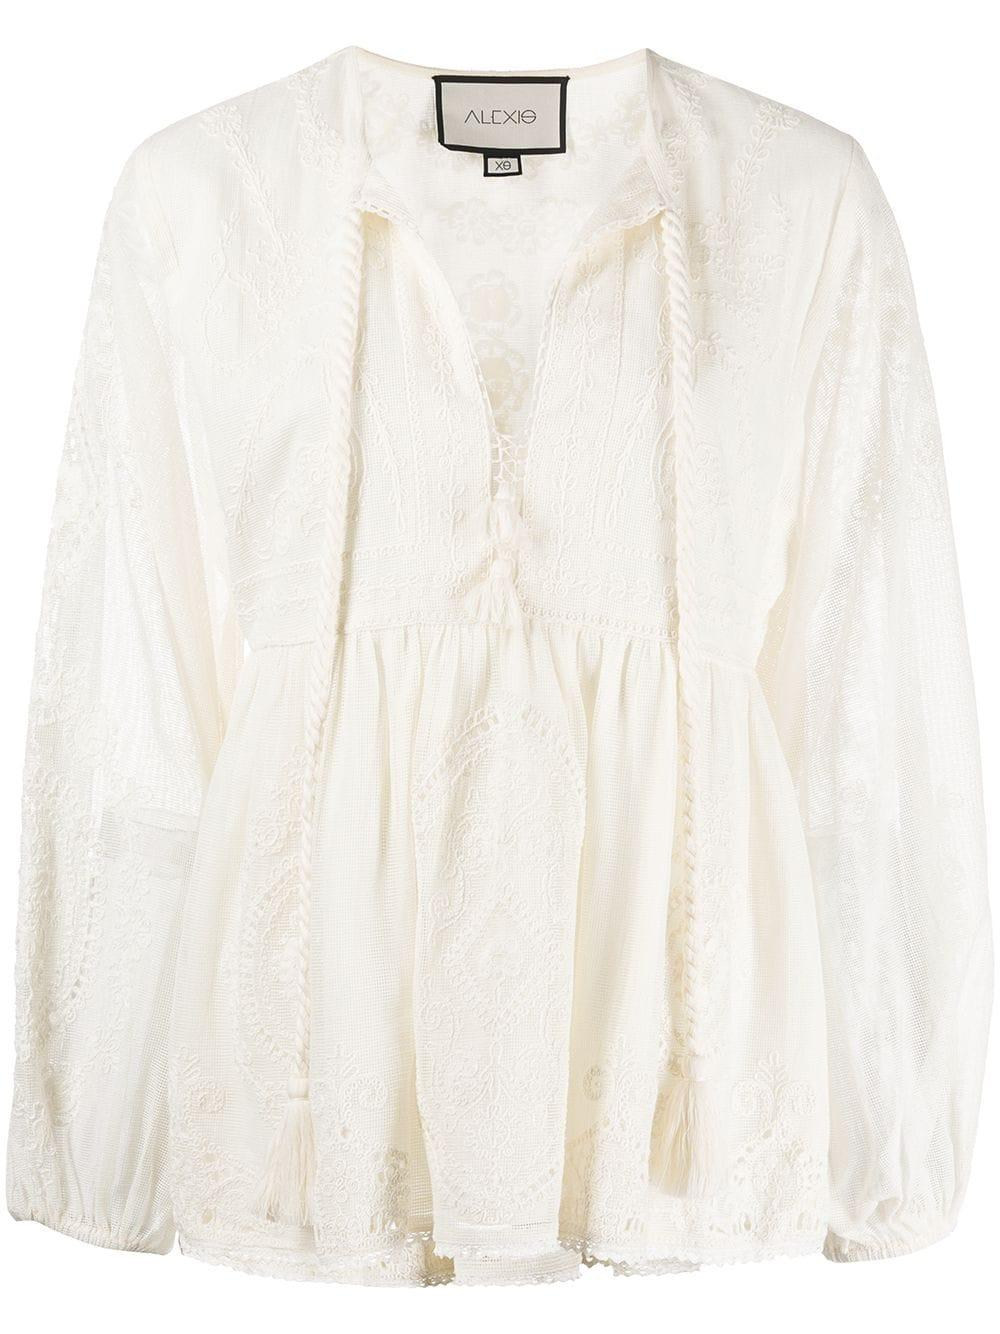 Rubia Embroidered Top Item # A3210129-7546